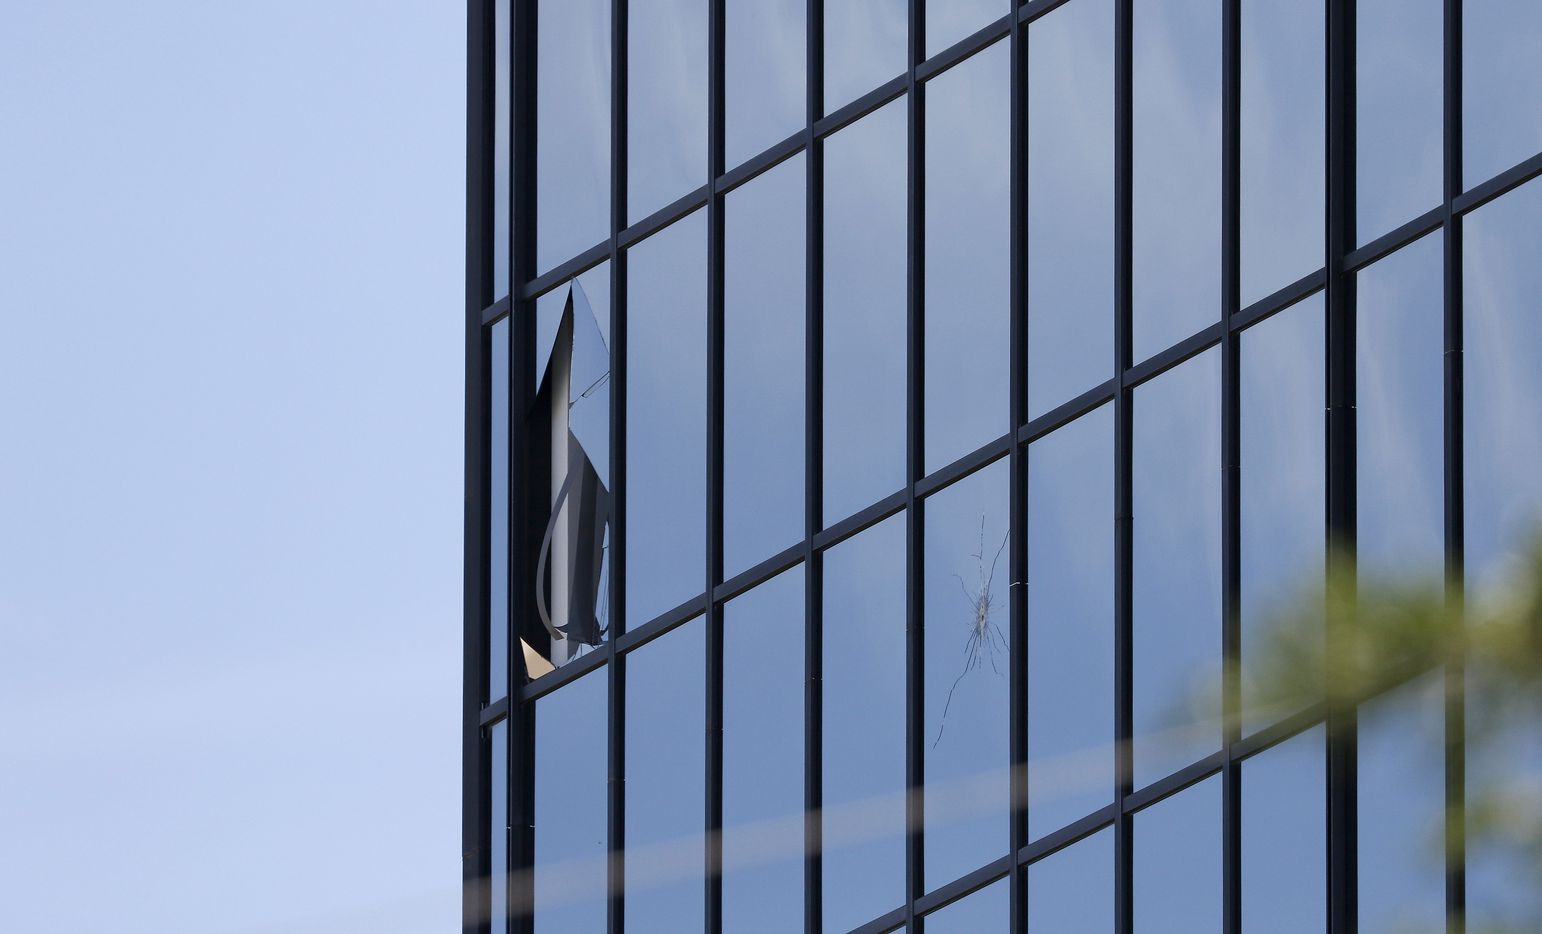 Bullet holes are seen near a broken window at the office building. (Jae S. Lee/Staff Photographer)